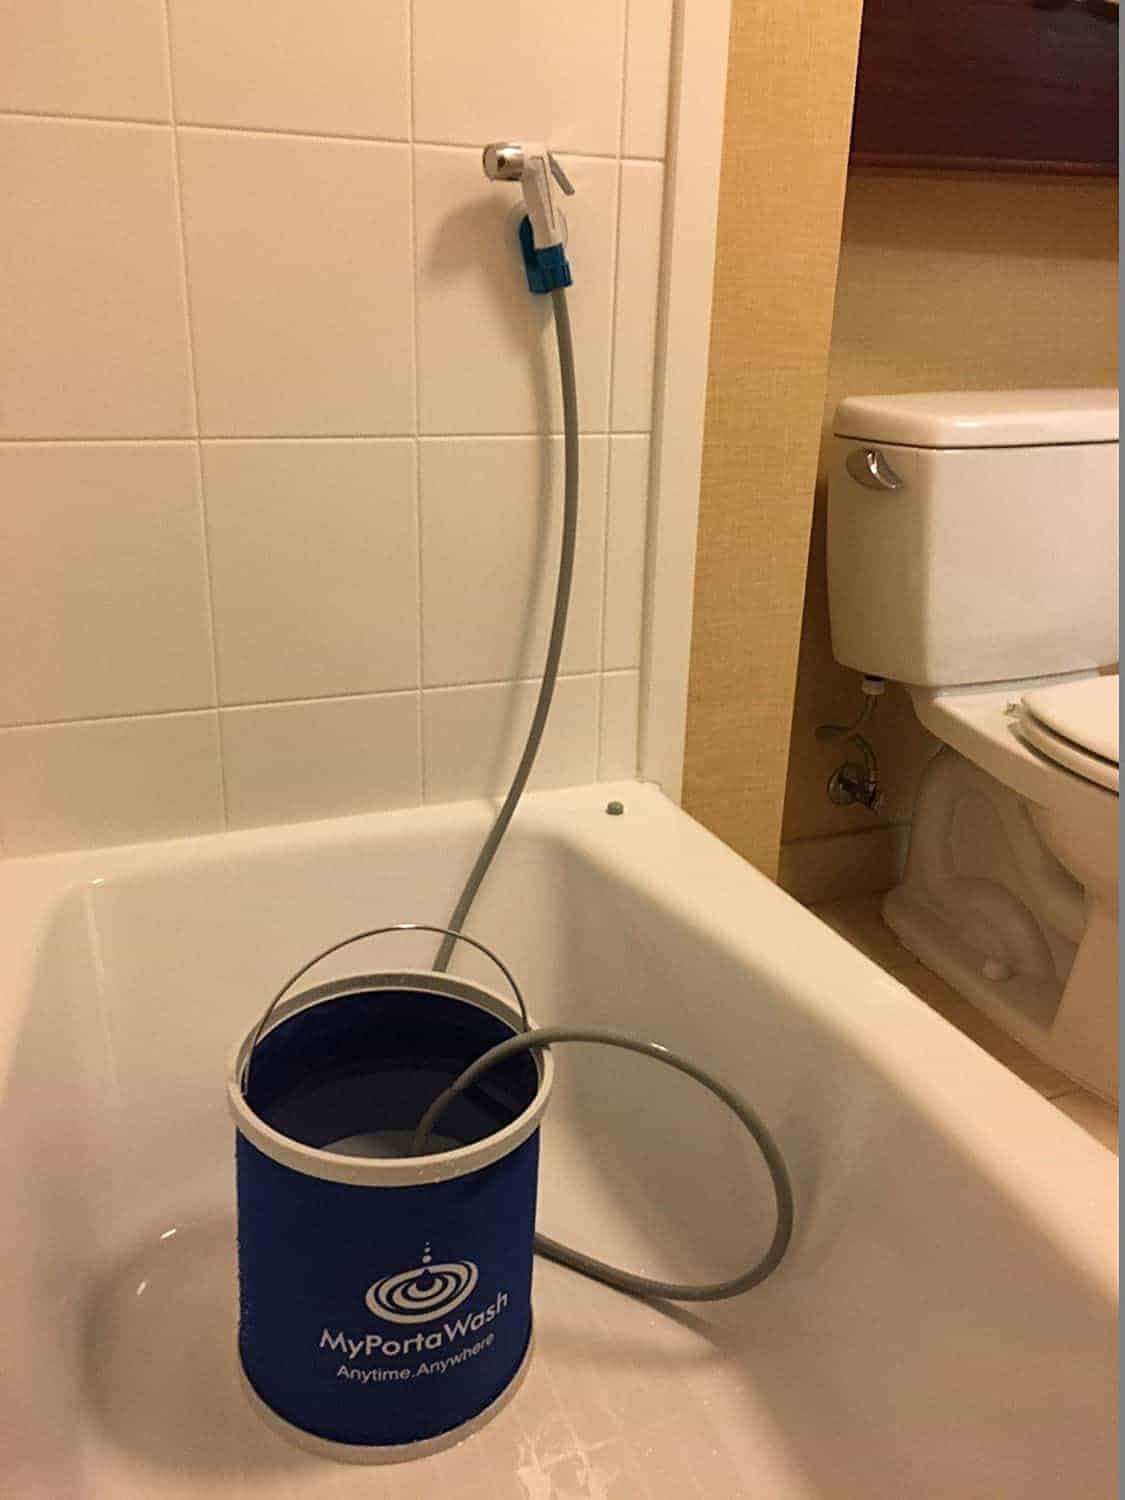 bidet hose sitting in a bucket of water